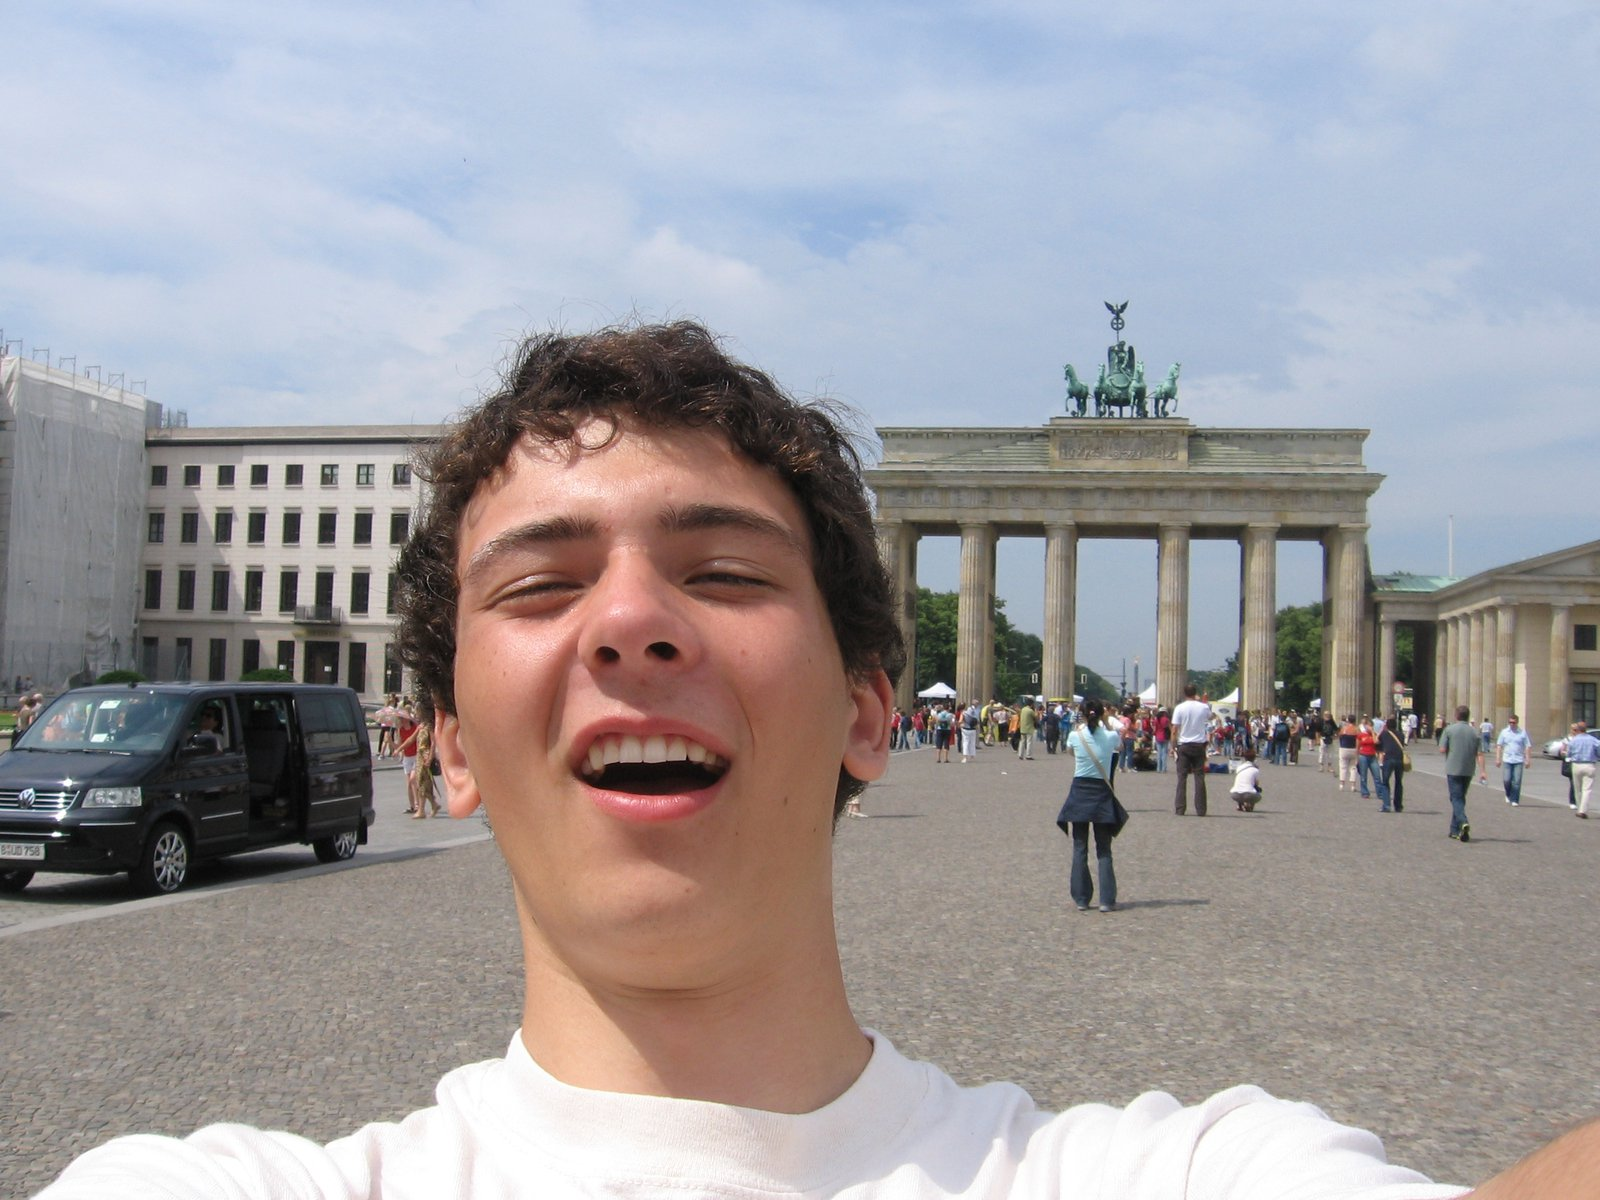 Me in Germany